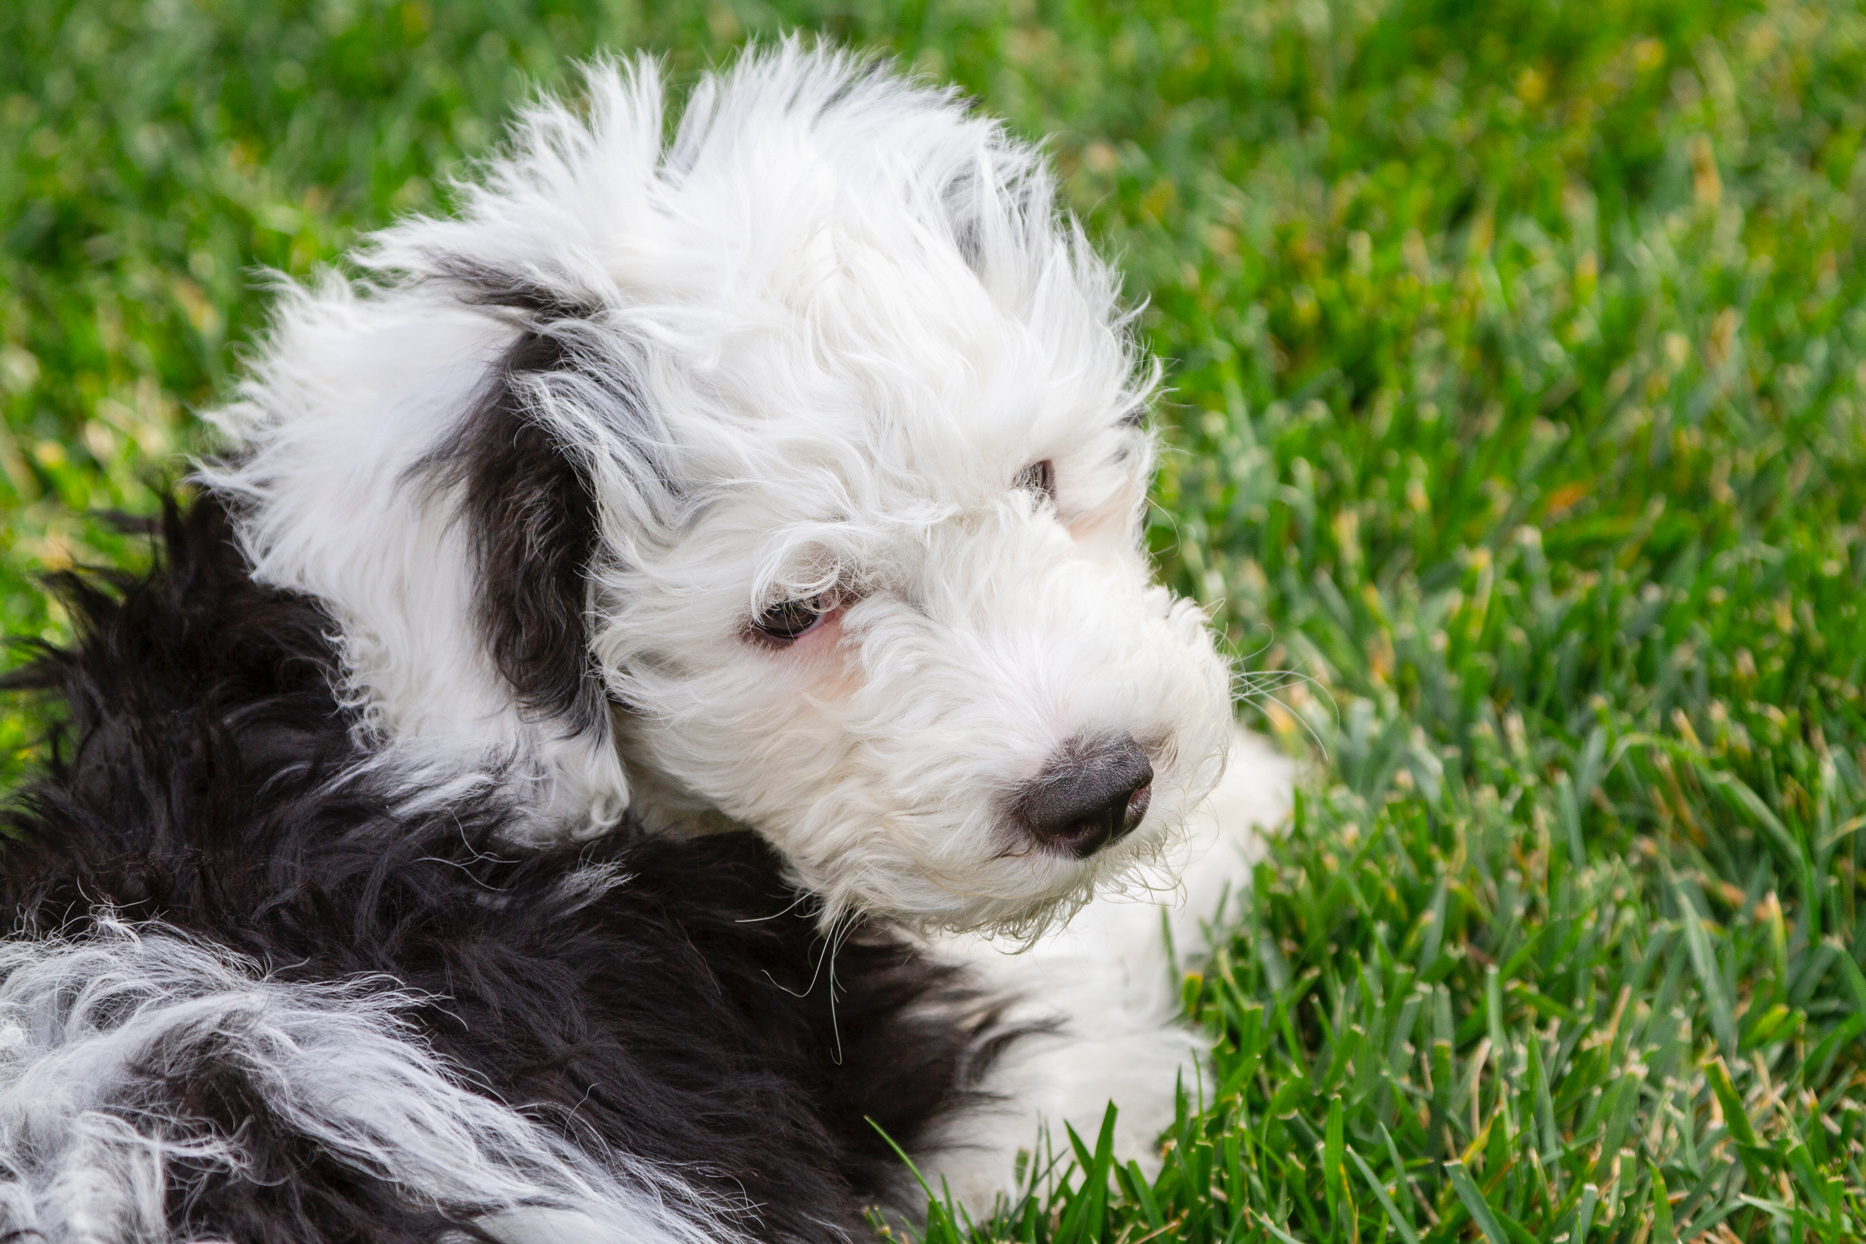 black and white sheepadoodle laying in grass